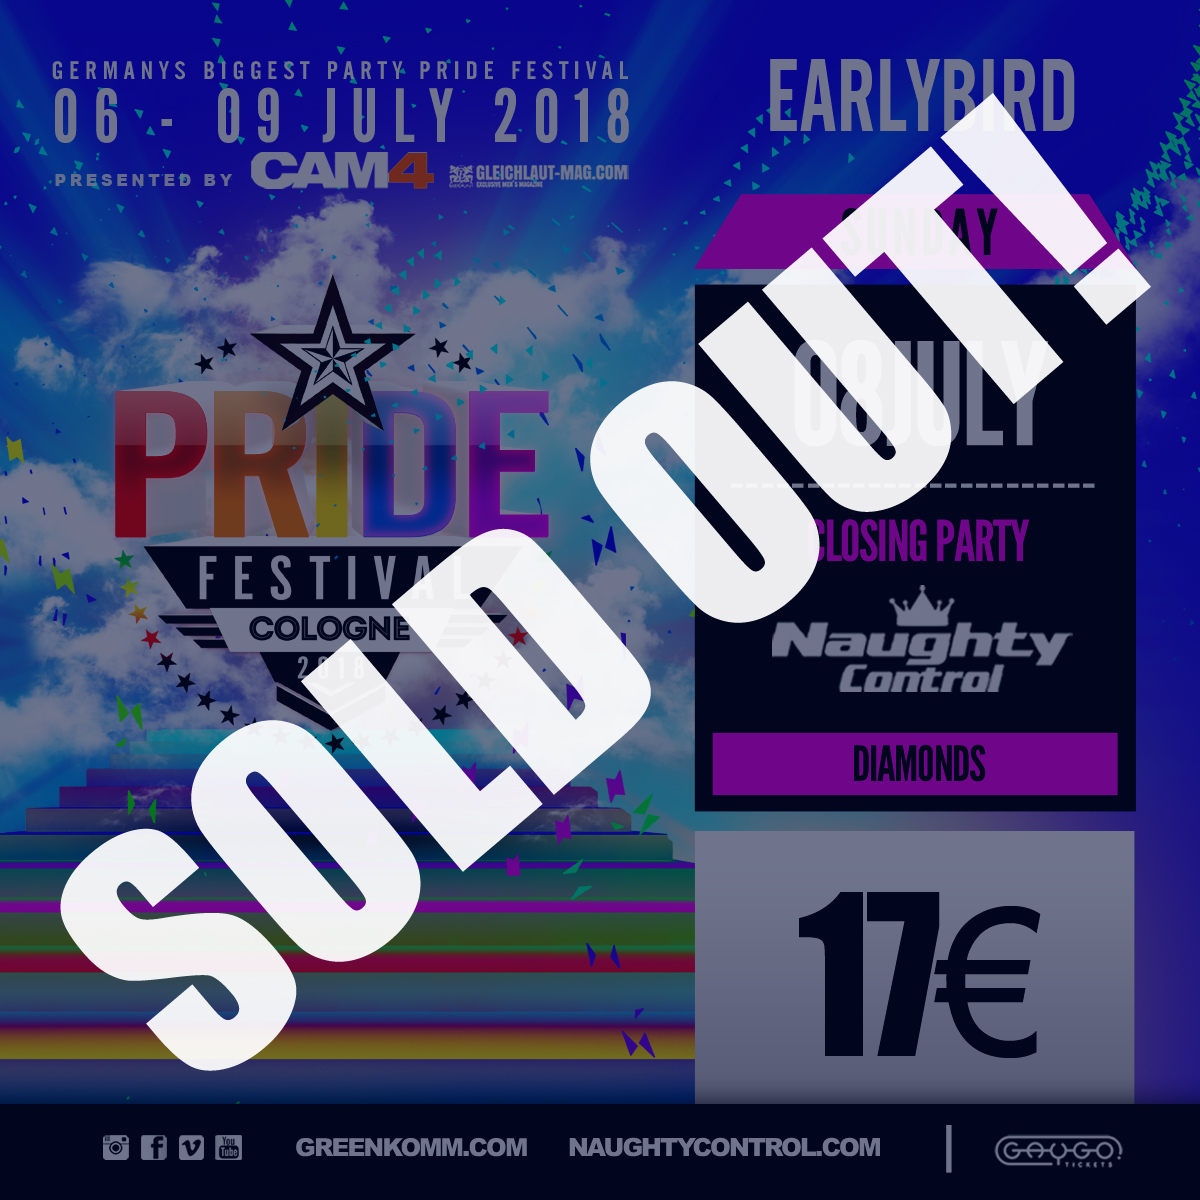 , +++ EARLY BIRD NAUGHT CONTROL | SOLD OUT! +++